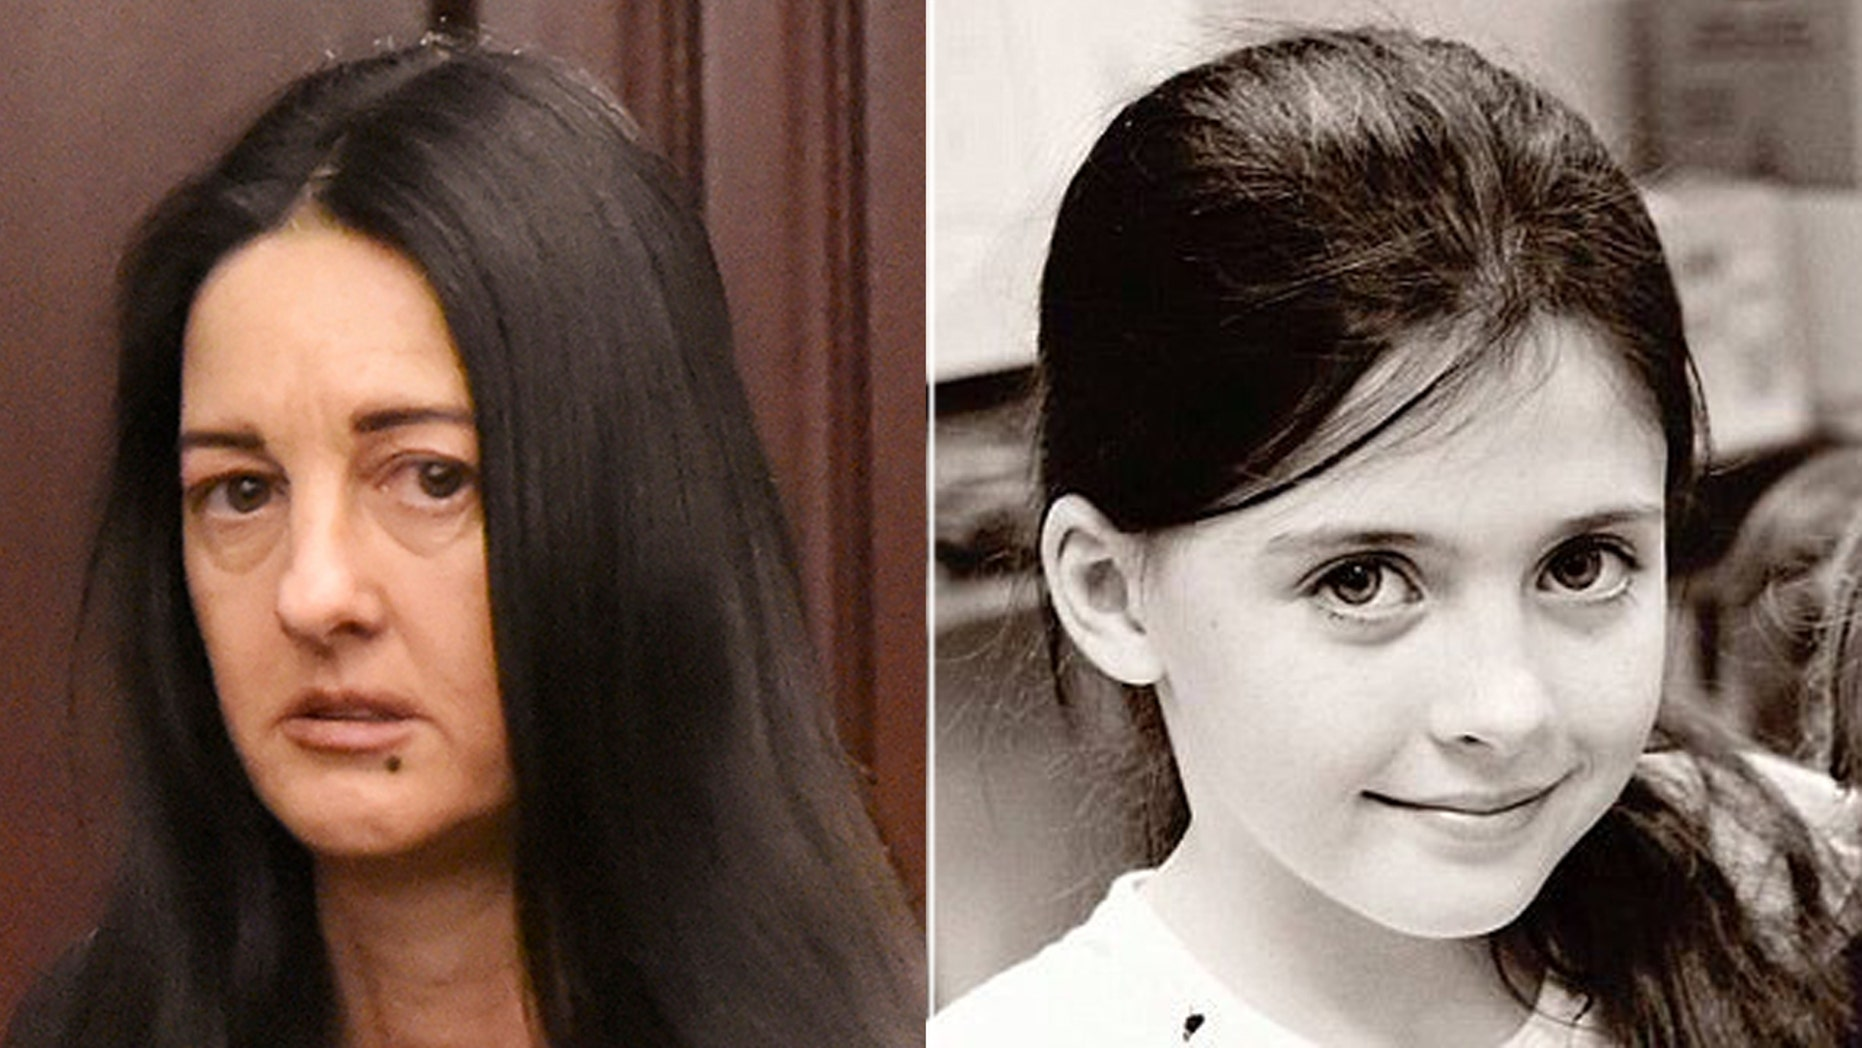 Rayne Perrywinkle (left) testified about the day her daughter, Cherish Perrywinkle, disappeared. The 8-year-old girl was abducted from a Florida Walmart in 2013 and later allegedly raped and killed by a Good Samaritan who was trying to help her family out.